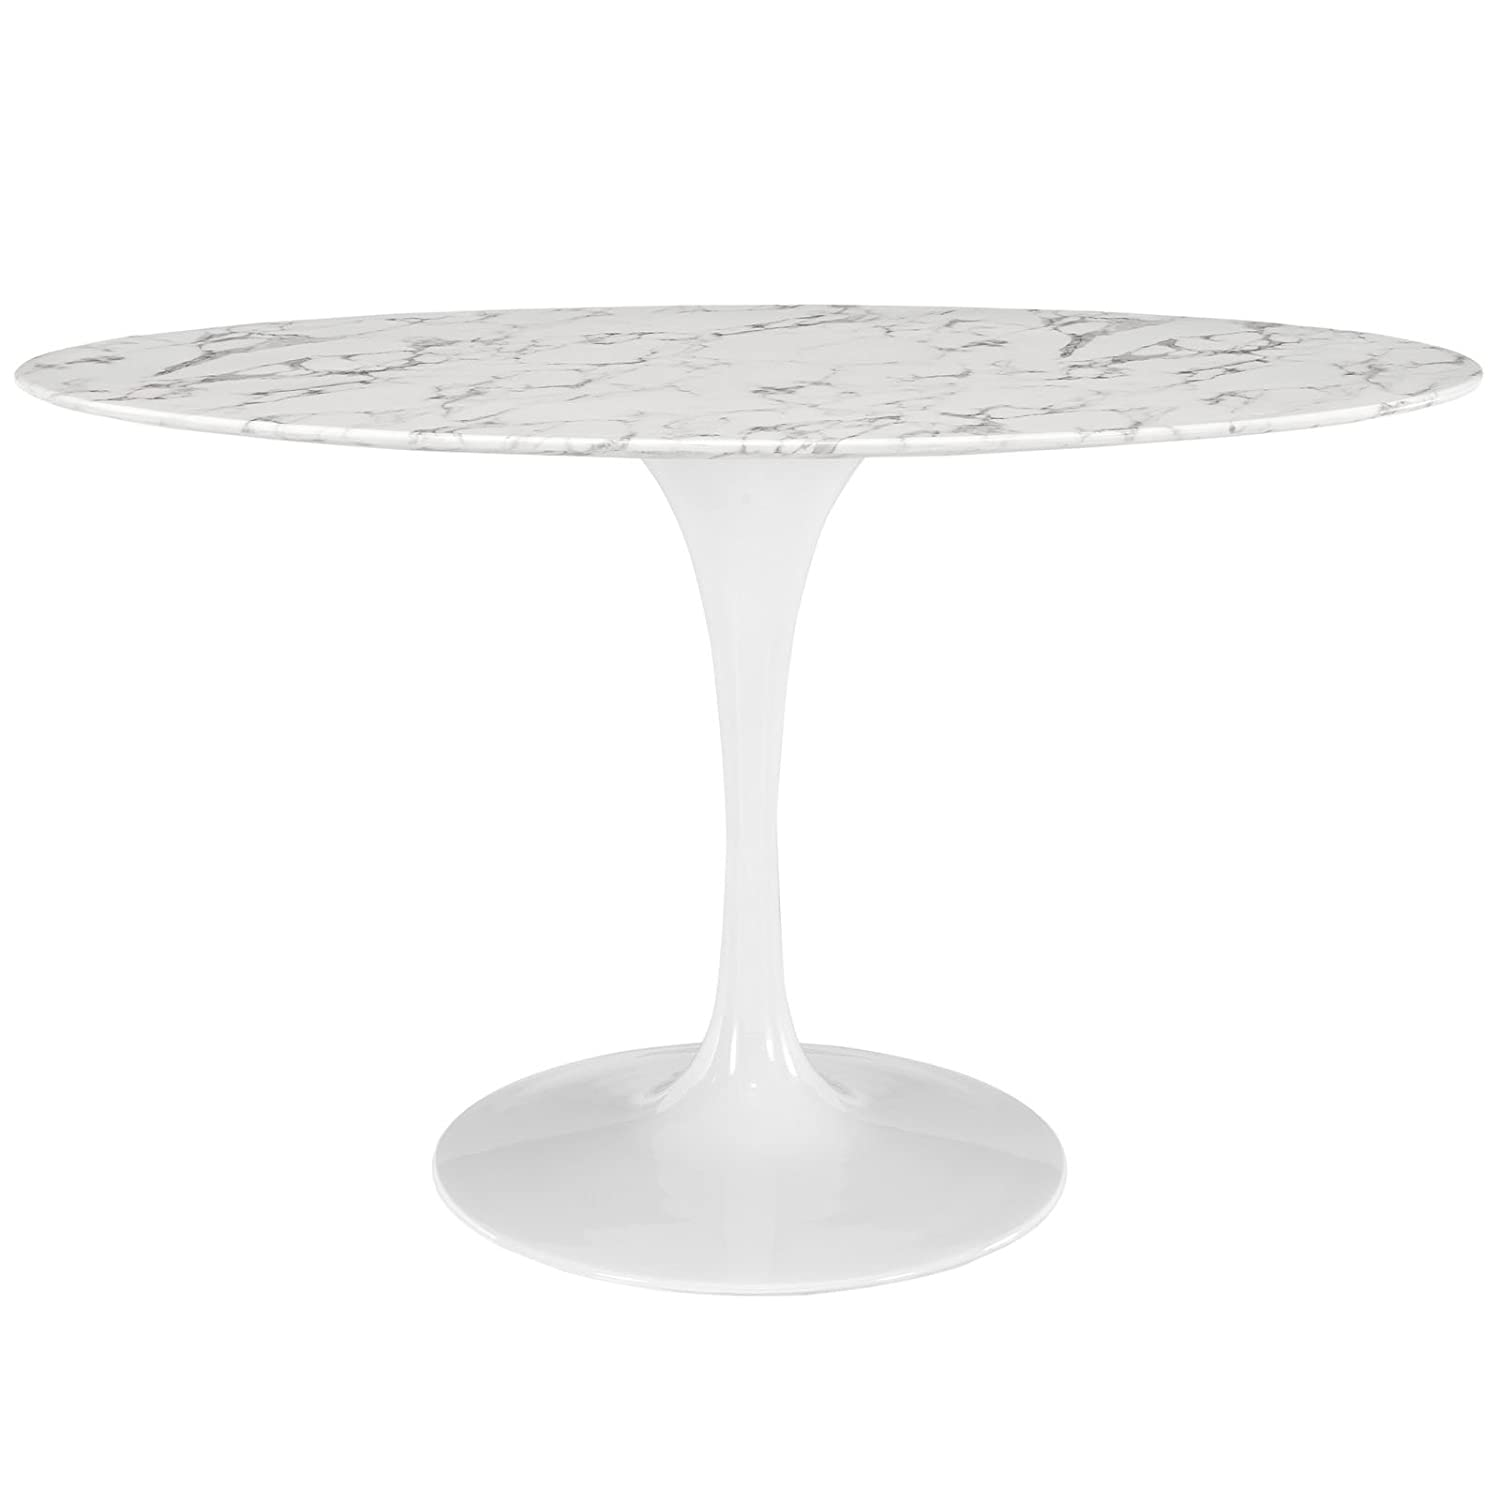 Amazoncom Modway Lippa  OvalShaped Artificial Marble Dining - Oval marble dining table